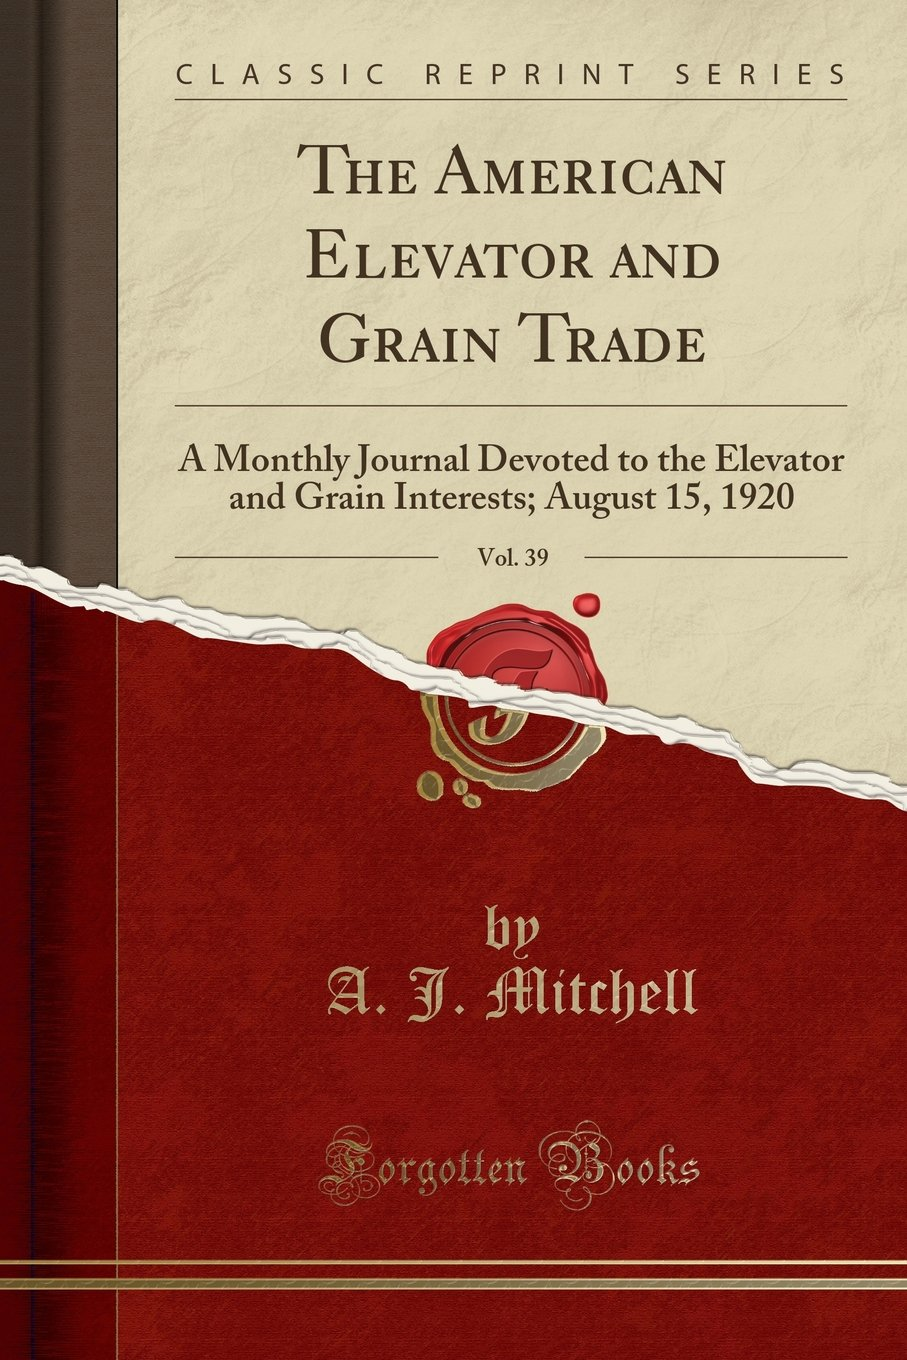 Download The American Elevator and Grain Trade, Vol. 39: A Monthly Journal Devoted to the Elevator and Grain Interests; August 15, 1920 (Classic Reprint) PDF